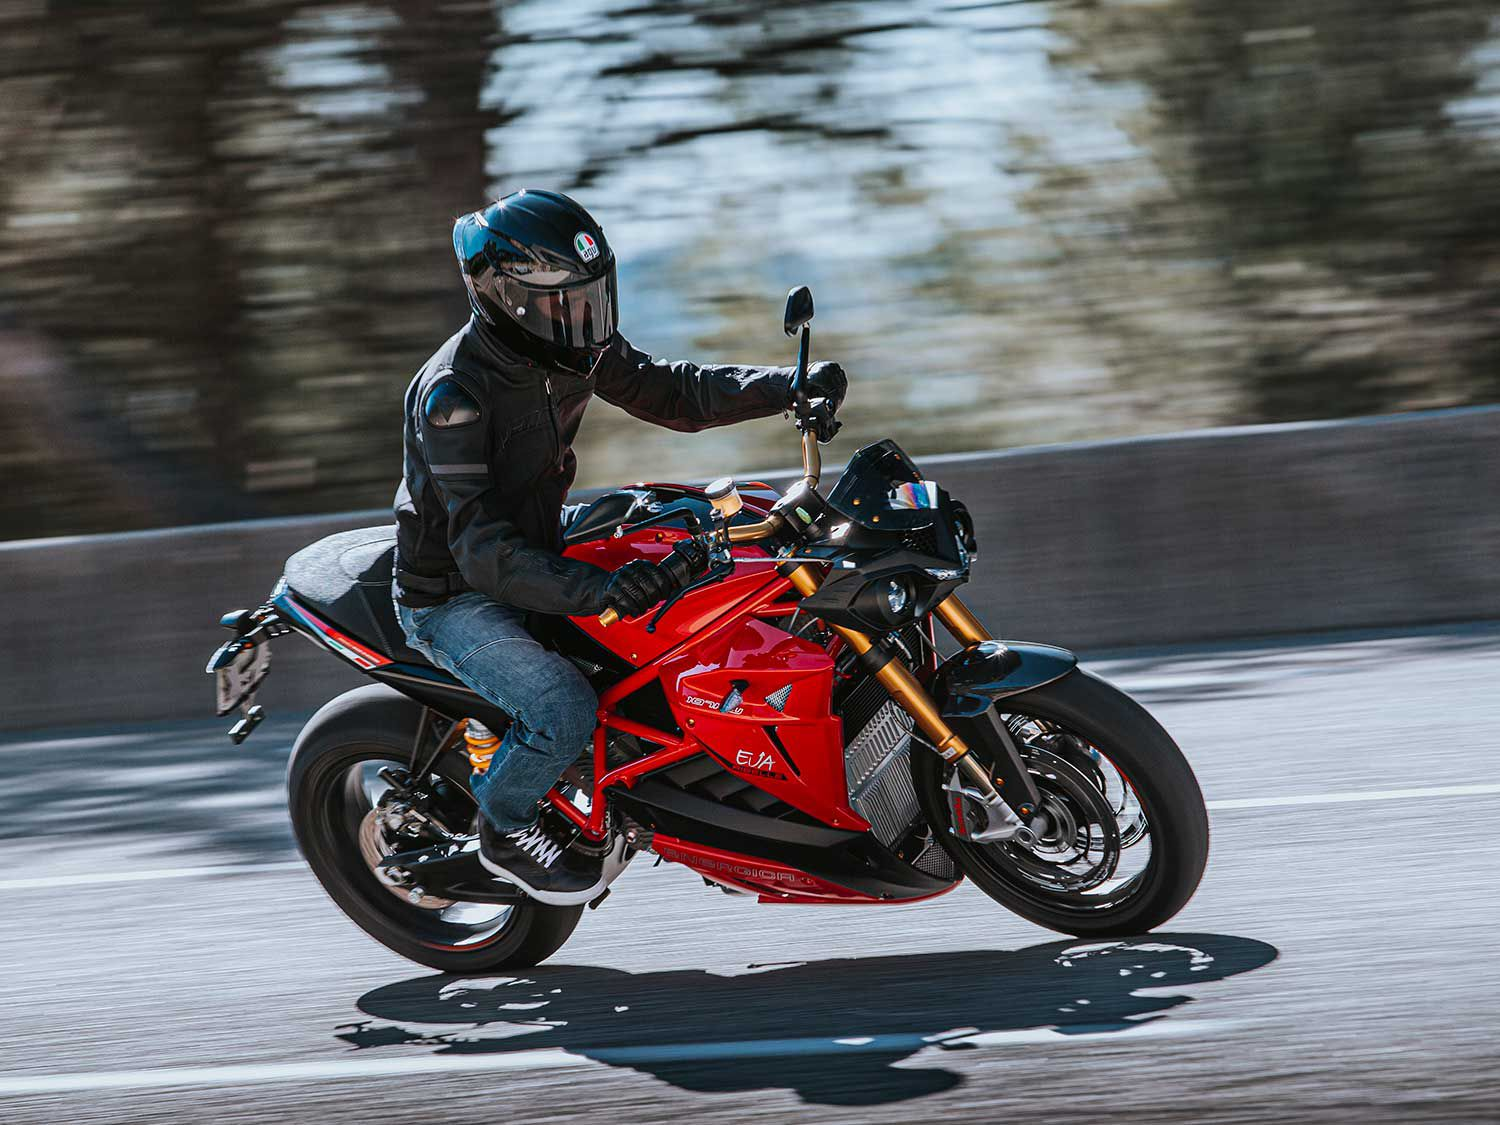 The Ribelle gets high-end and adjustable suspension components and big triple-disc brakes from Brembo.